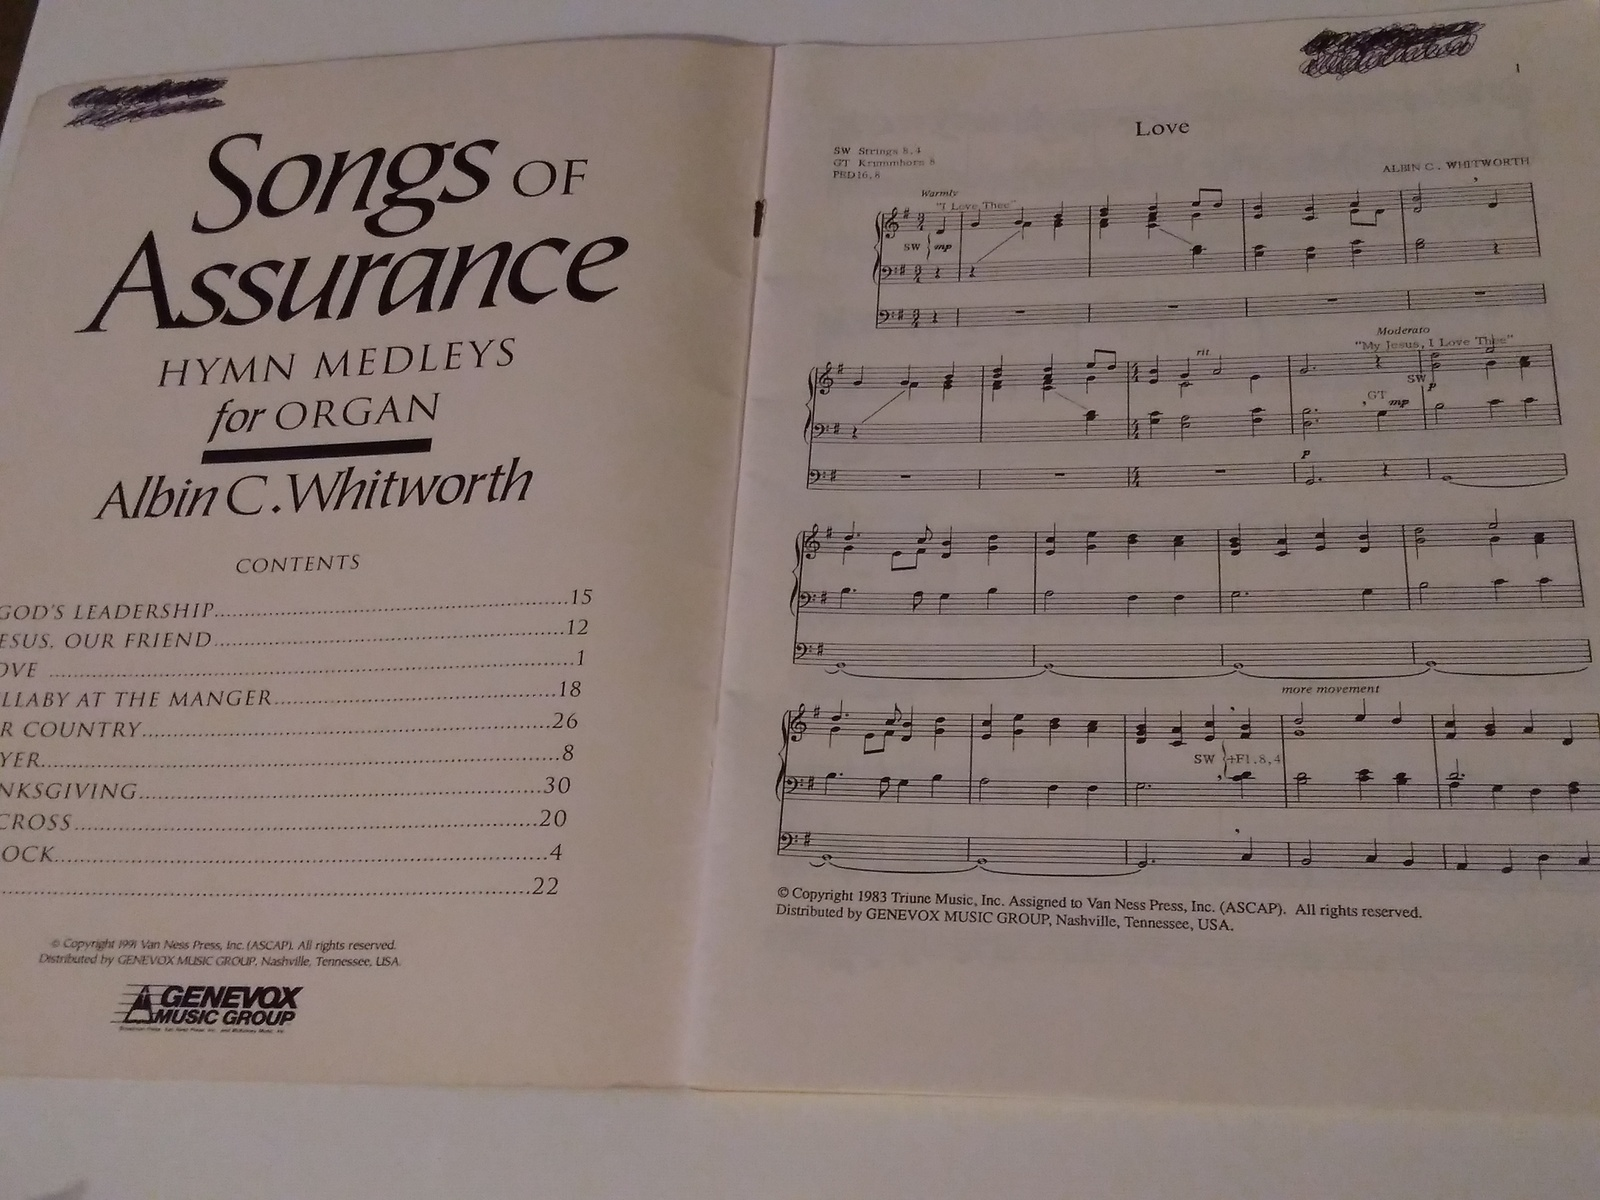 Songs of Assurance Hymn Melodies for Organ Albin C. Whitworth image 2